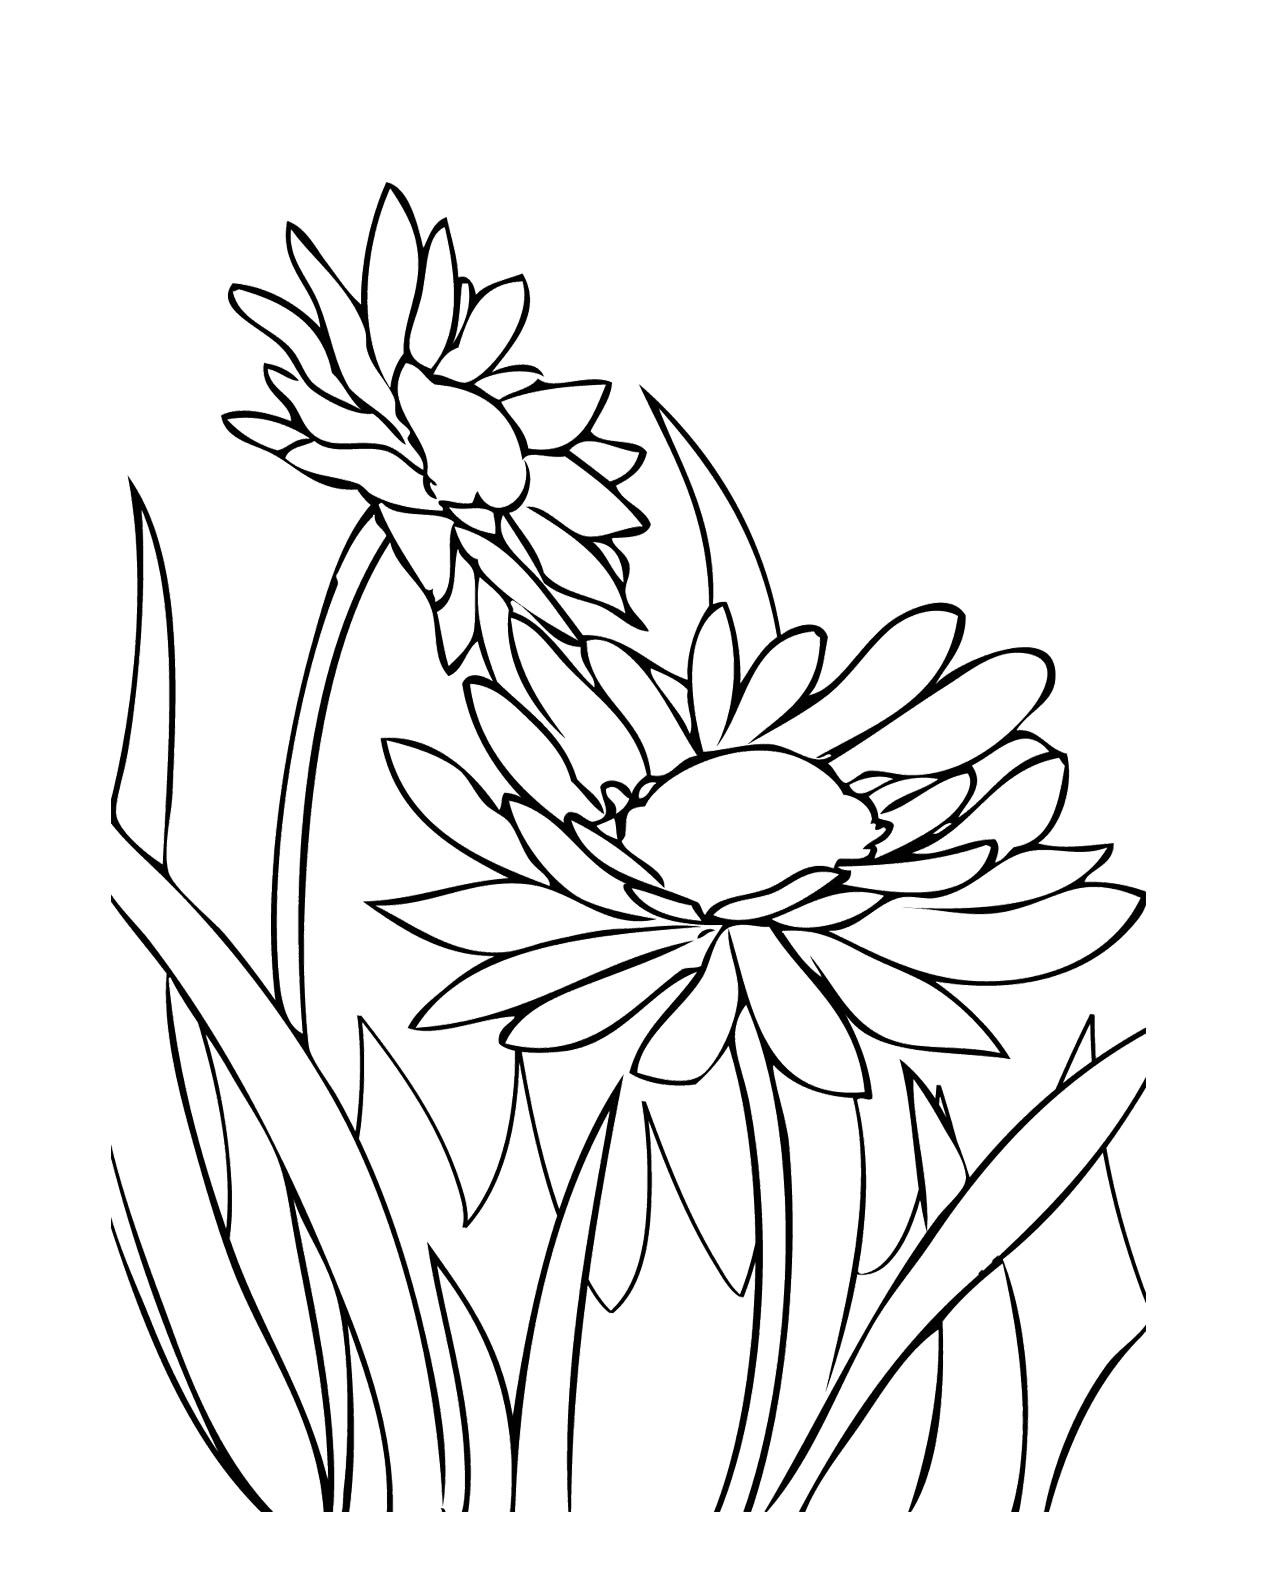 Growing Spring Flowers Coloring Pages | Flower coloring ... | spring flower coloring pages